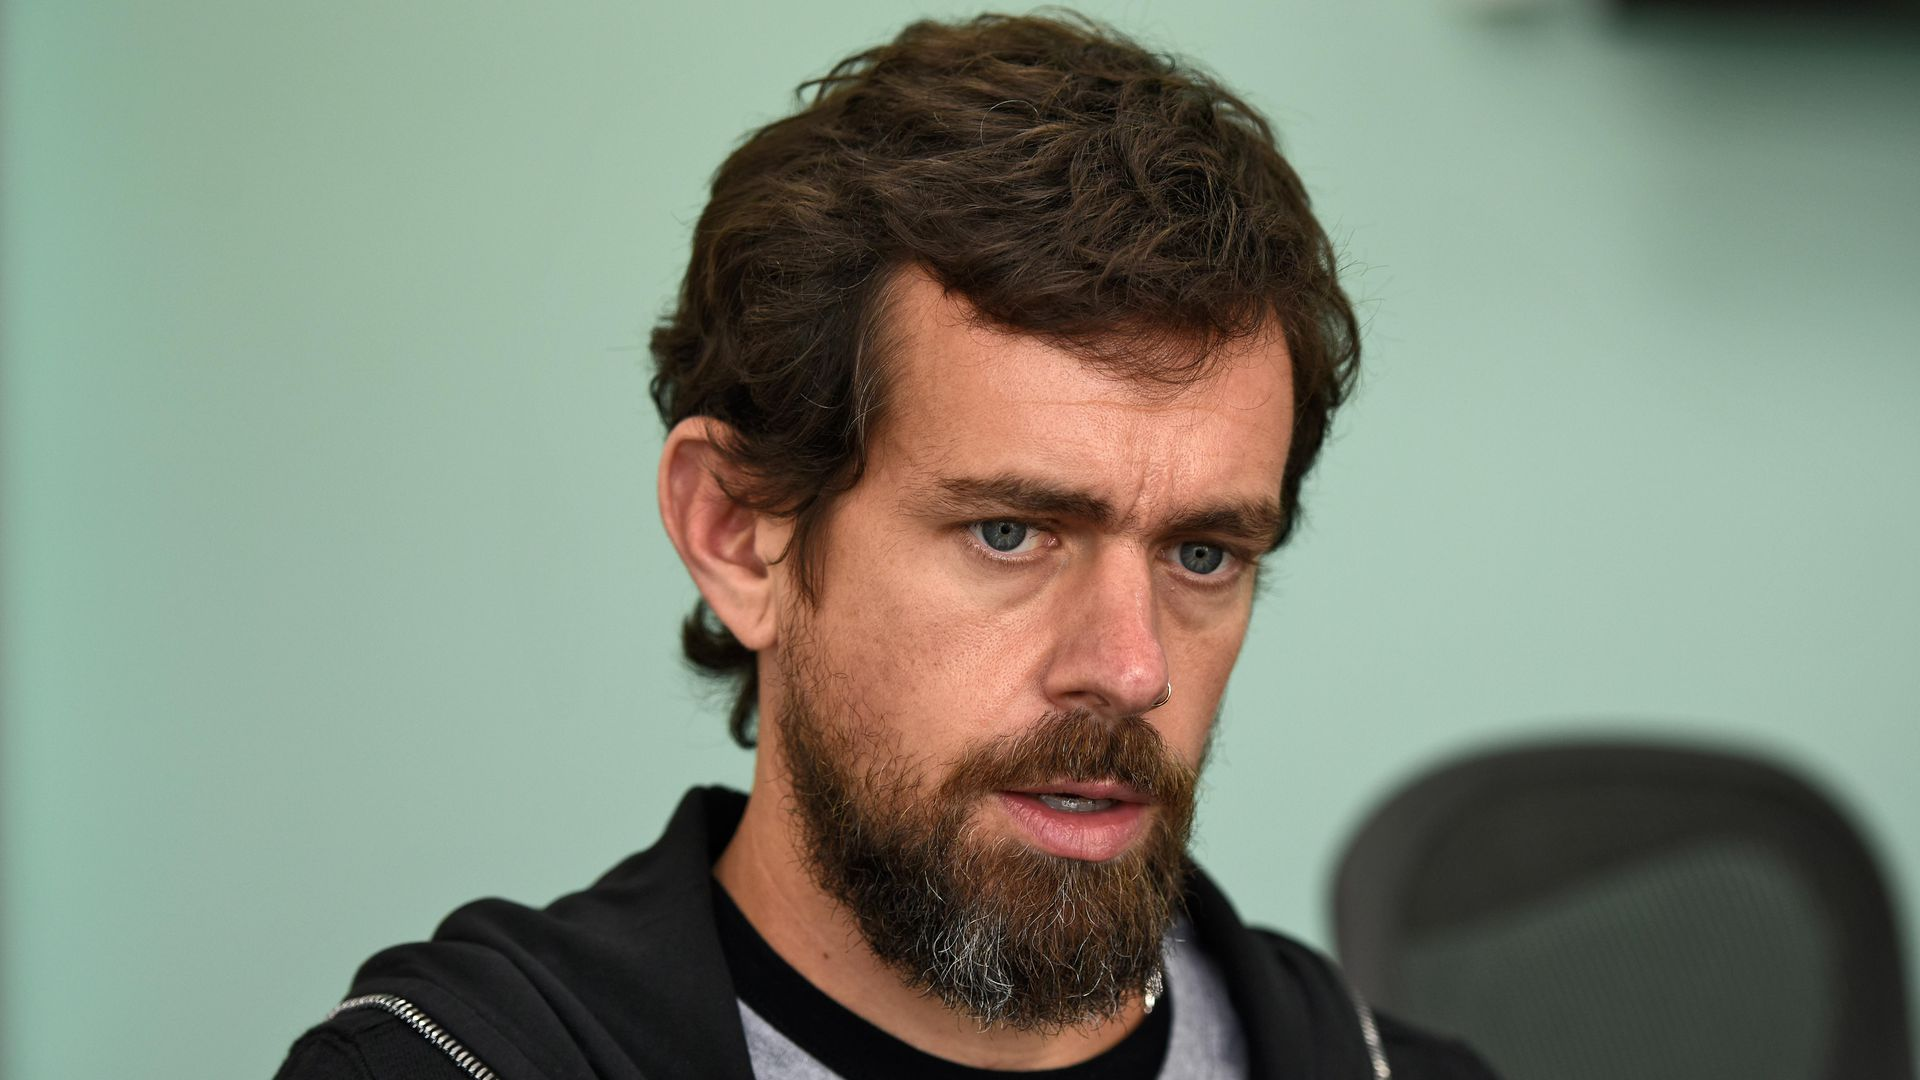 In this image, Dorsey is speaking while wearing a shirt and a hoodie.